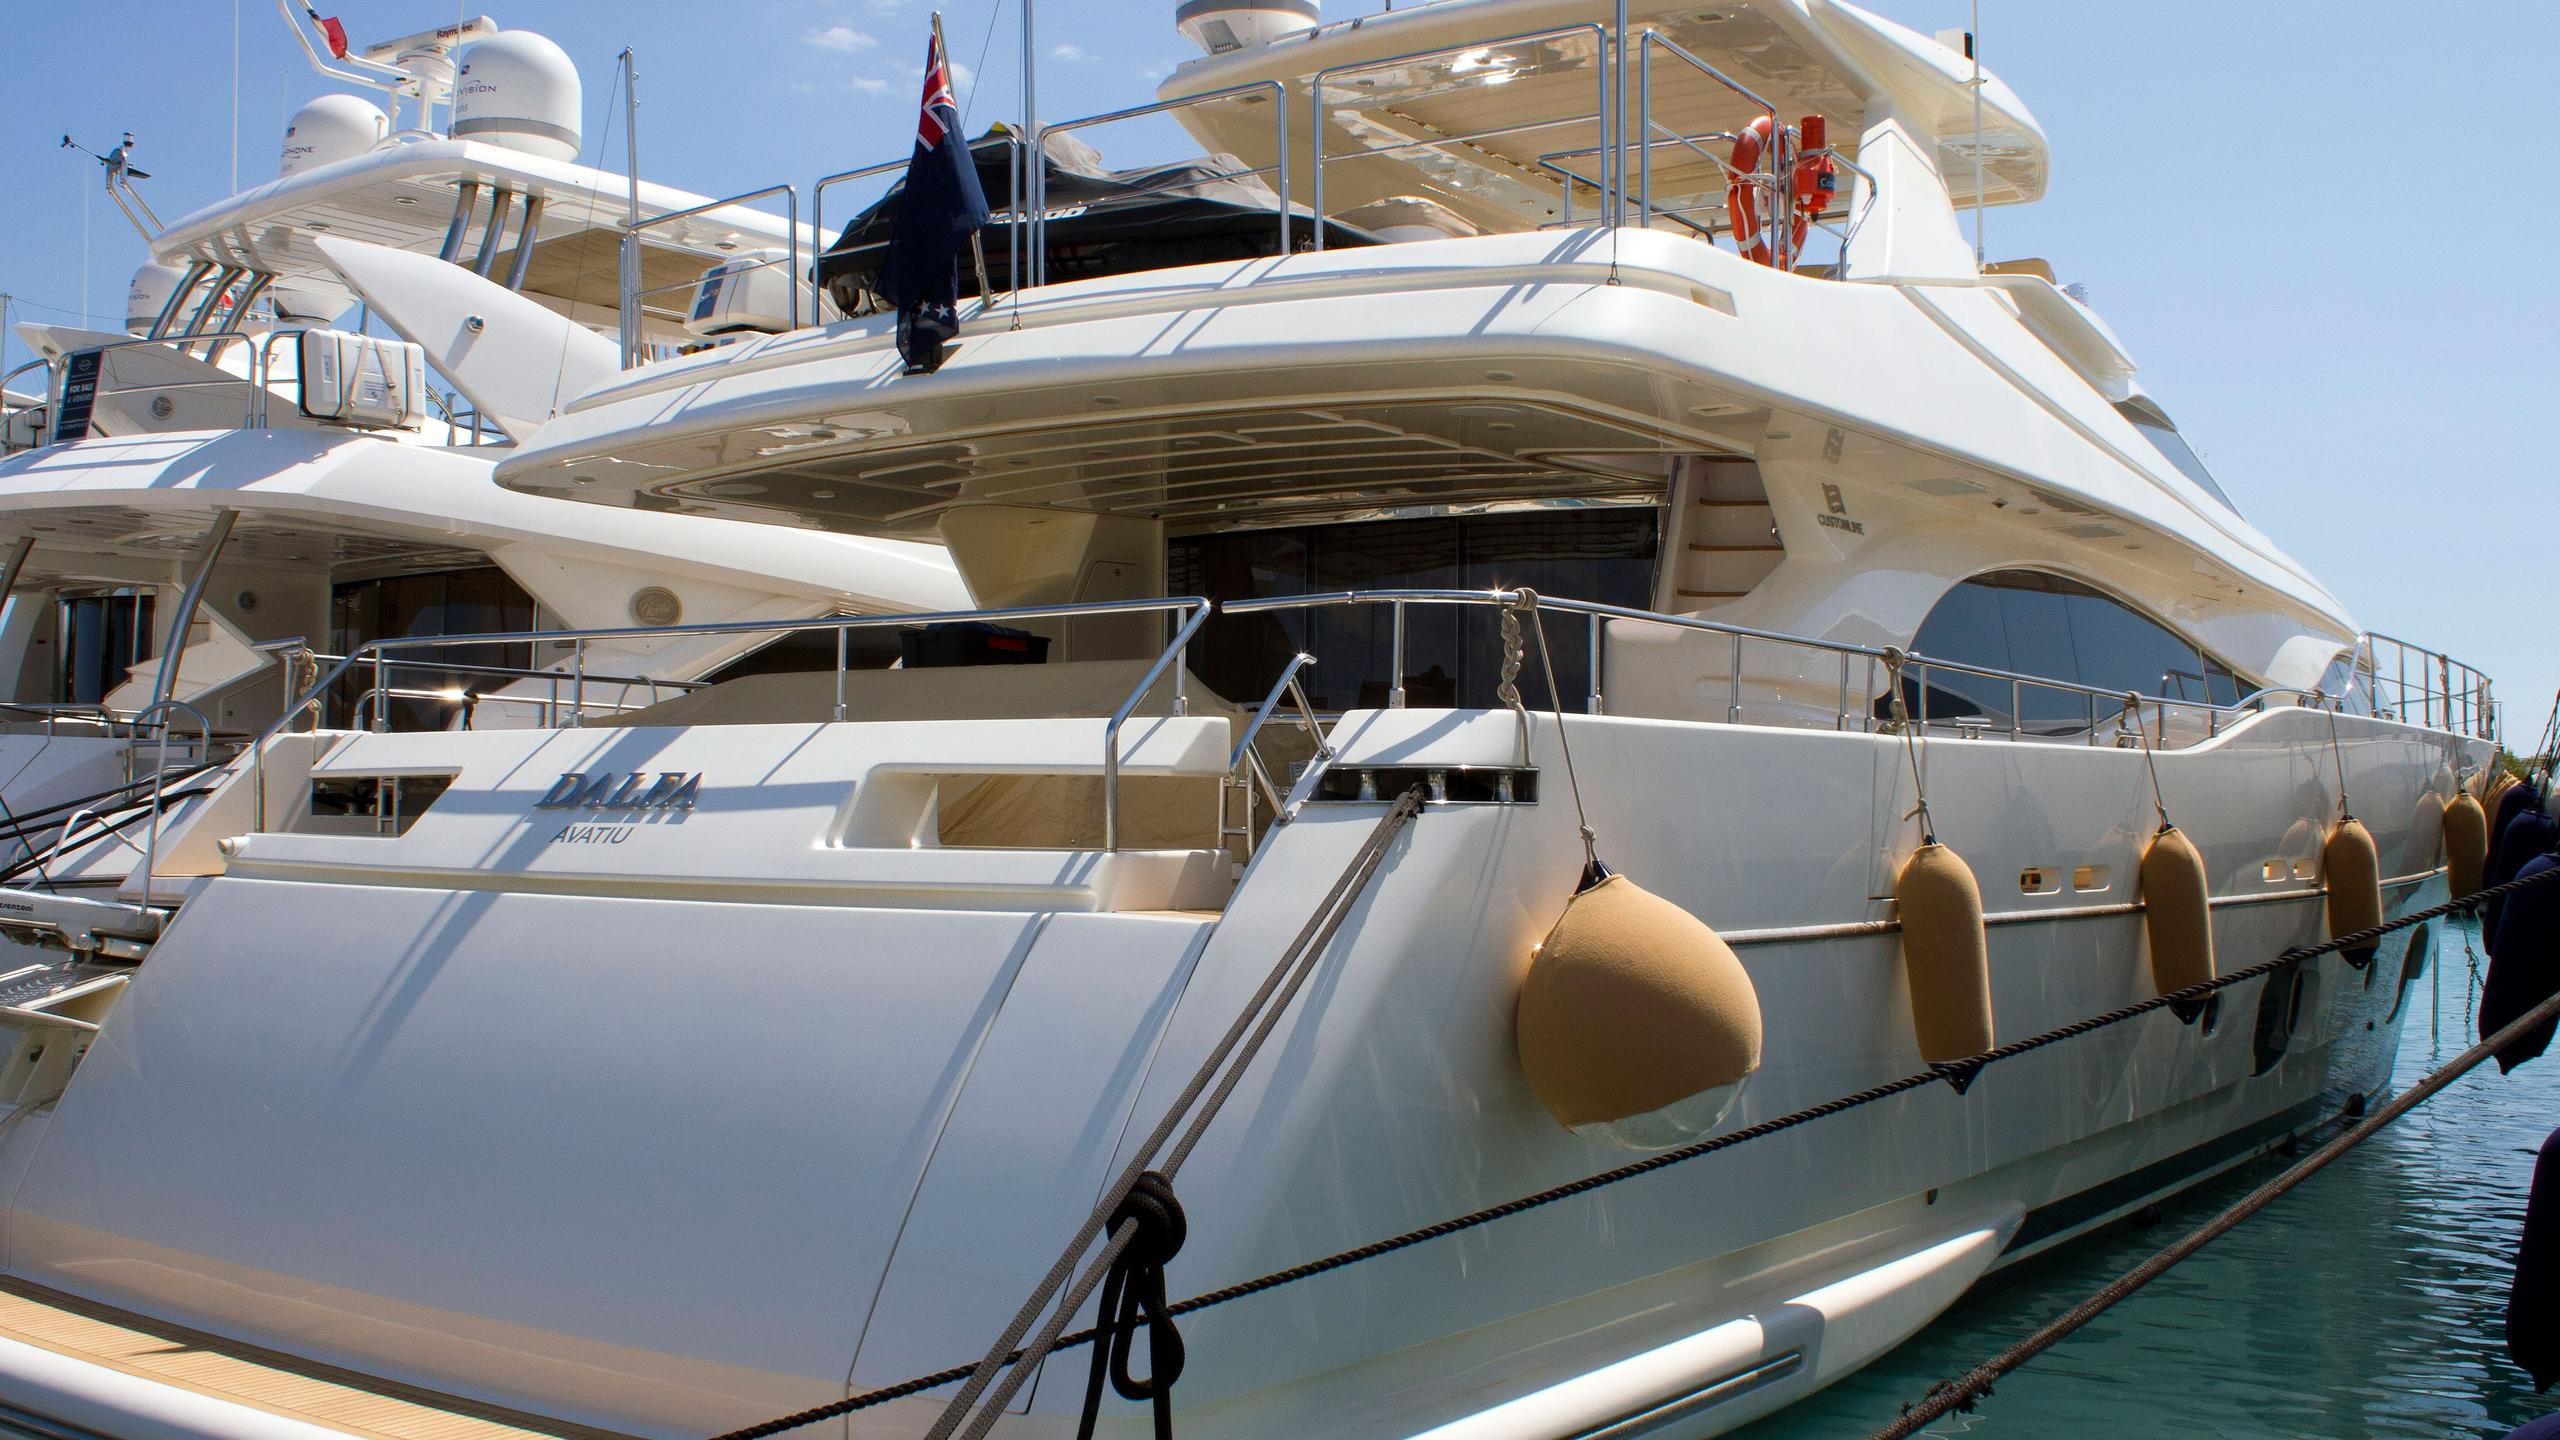 the capital dalfa motor yacht custom line 97 ferretti 2008 29m moored stern